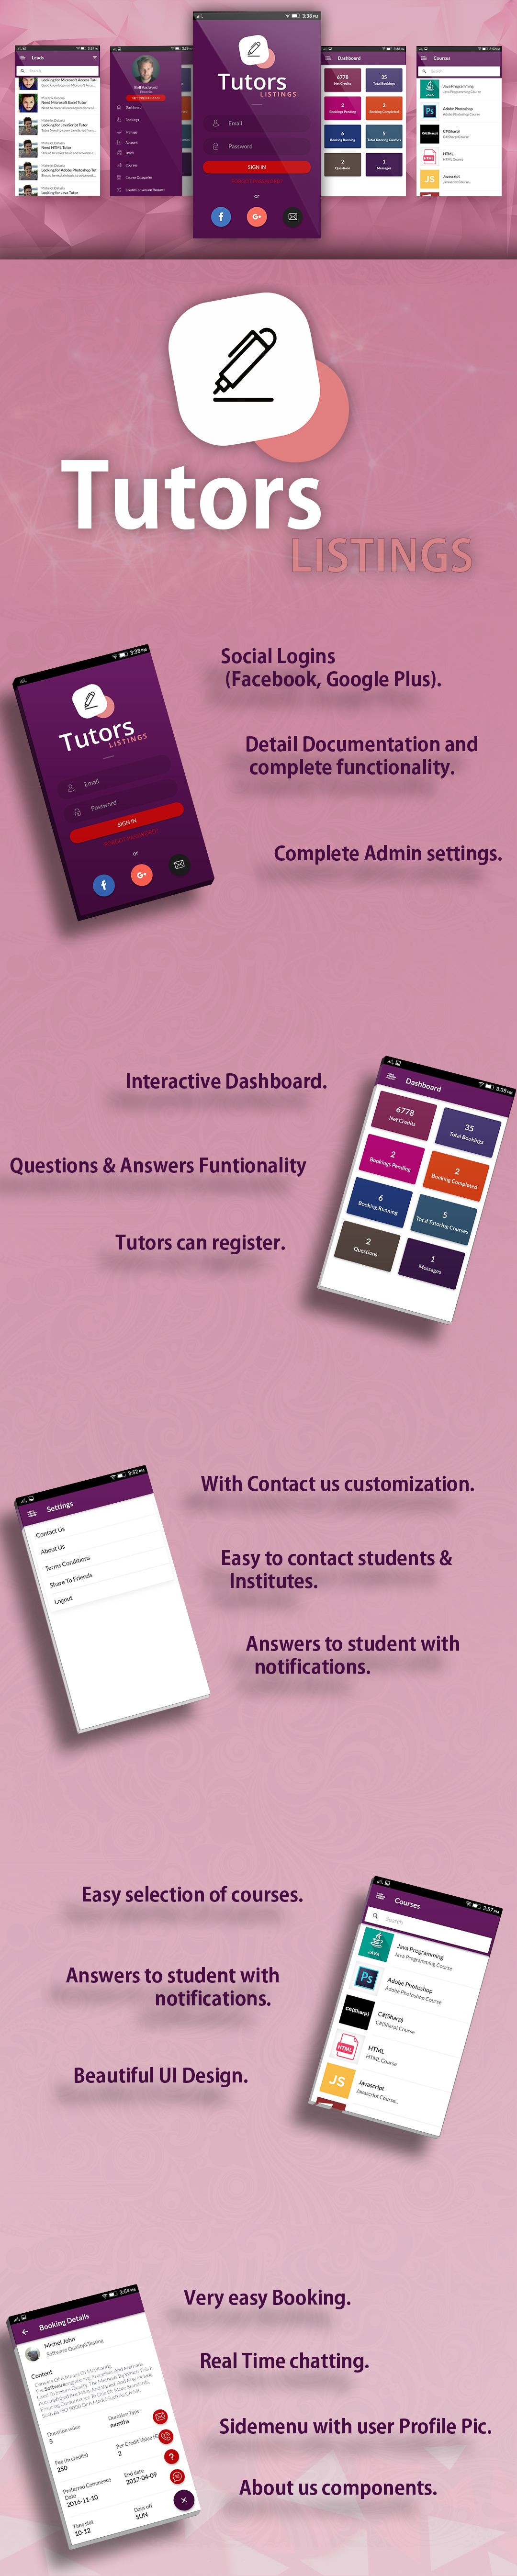 Tutors Mobile App